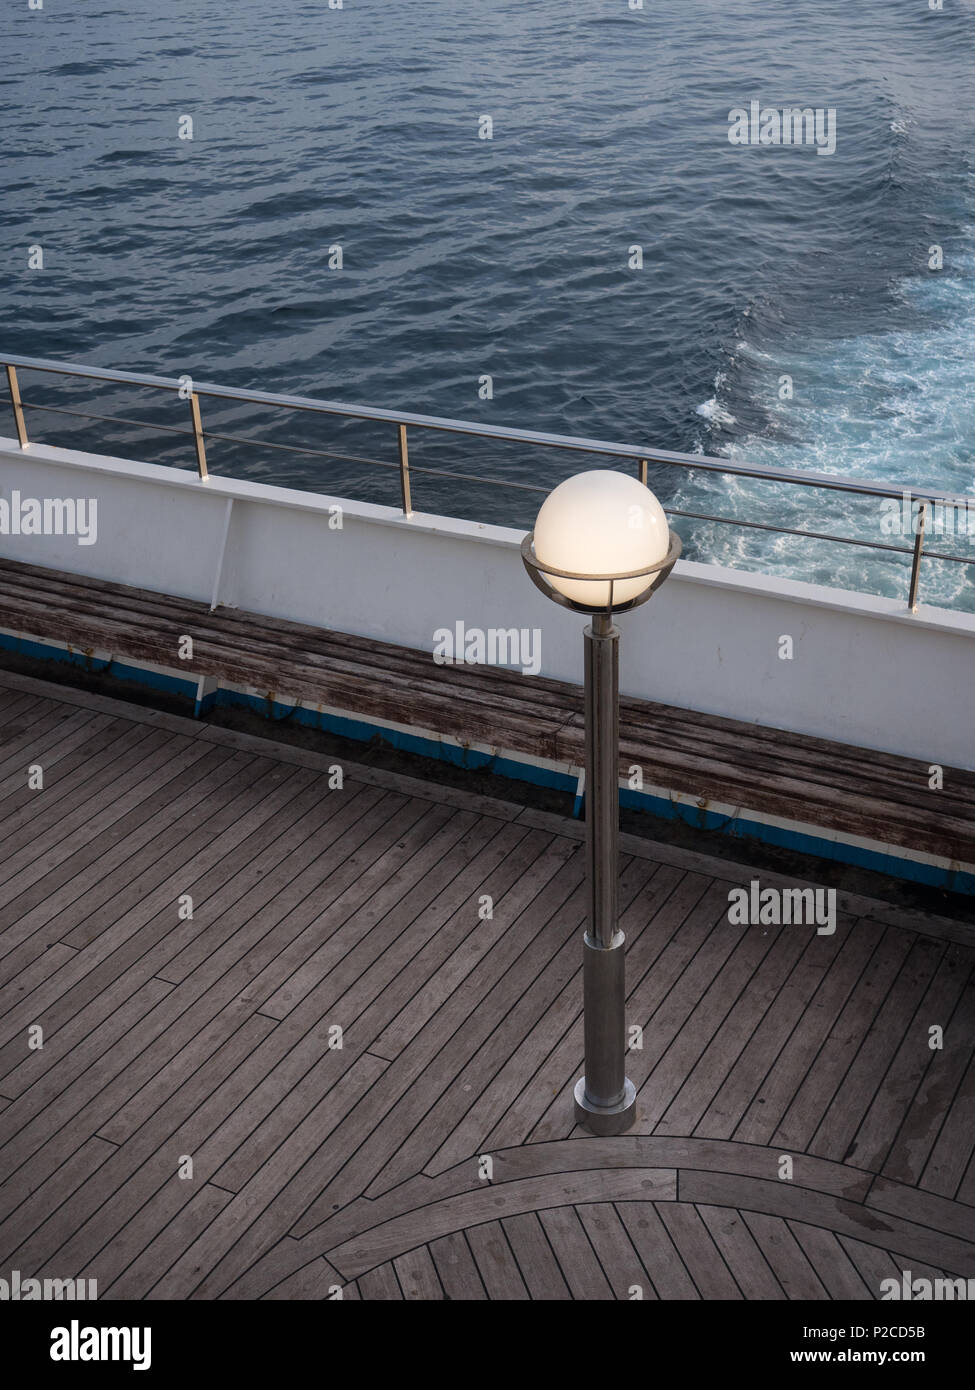 lamp post on a ferry deck at sunset Stock Photo